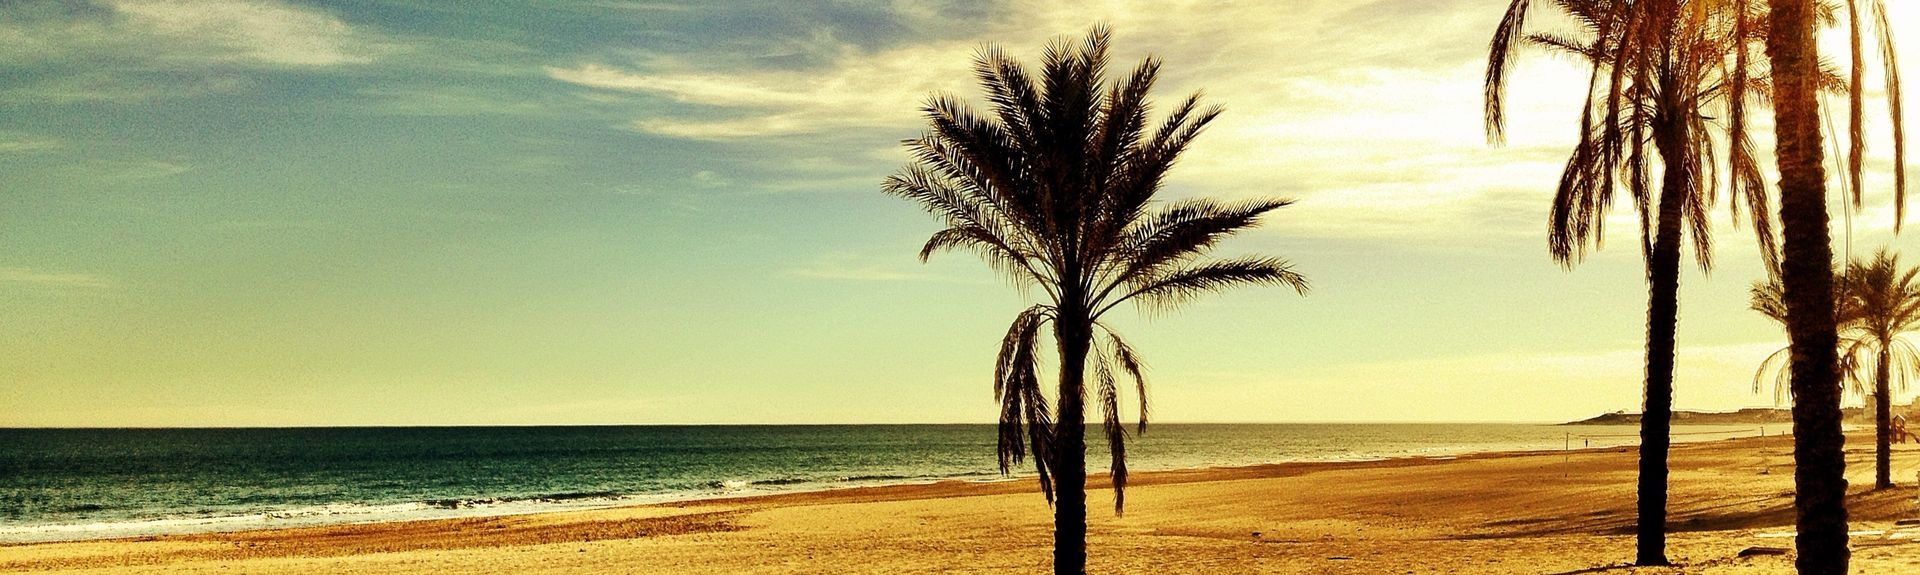 El Campello, Valencian Community, Spain